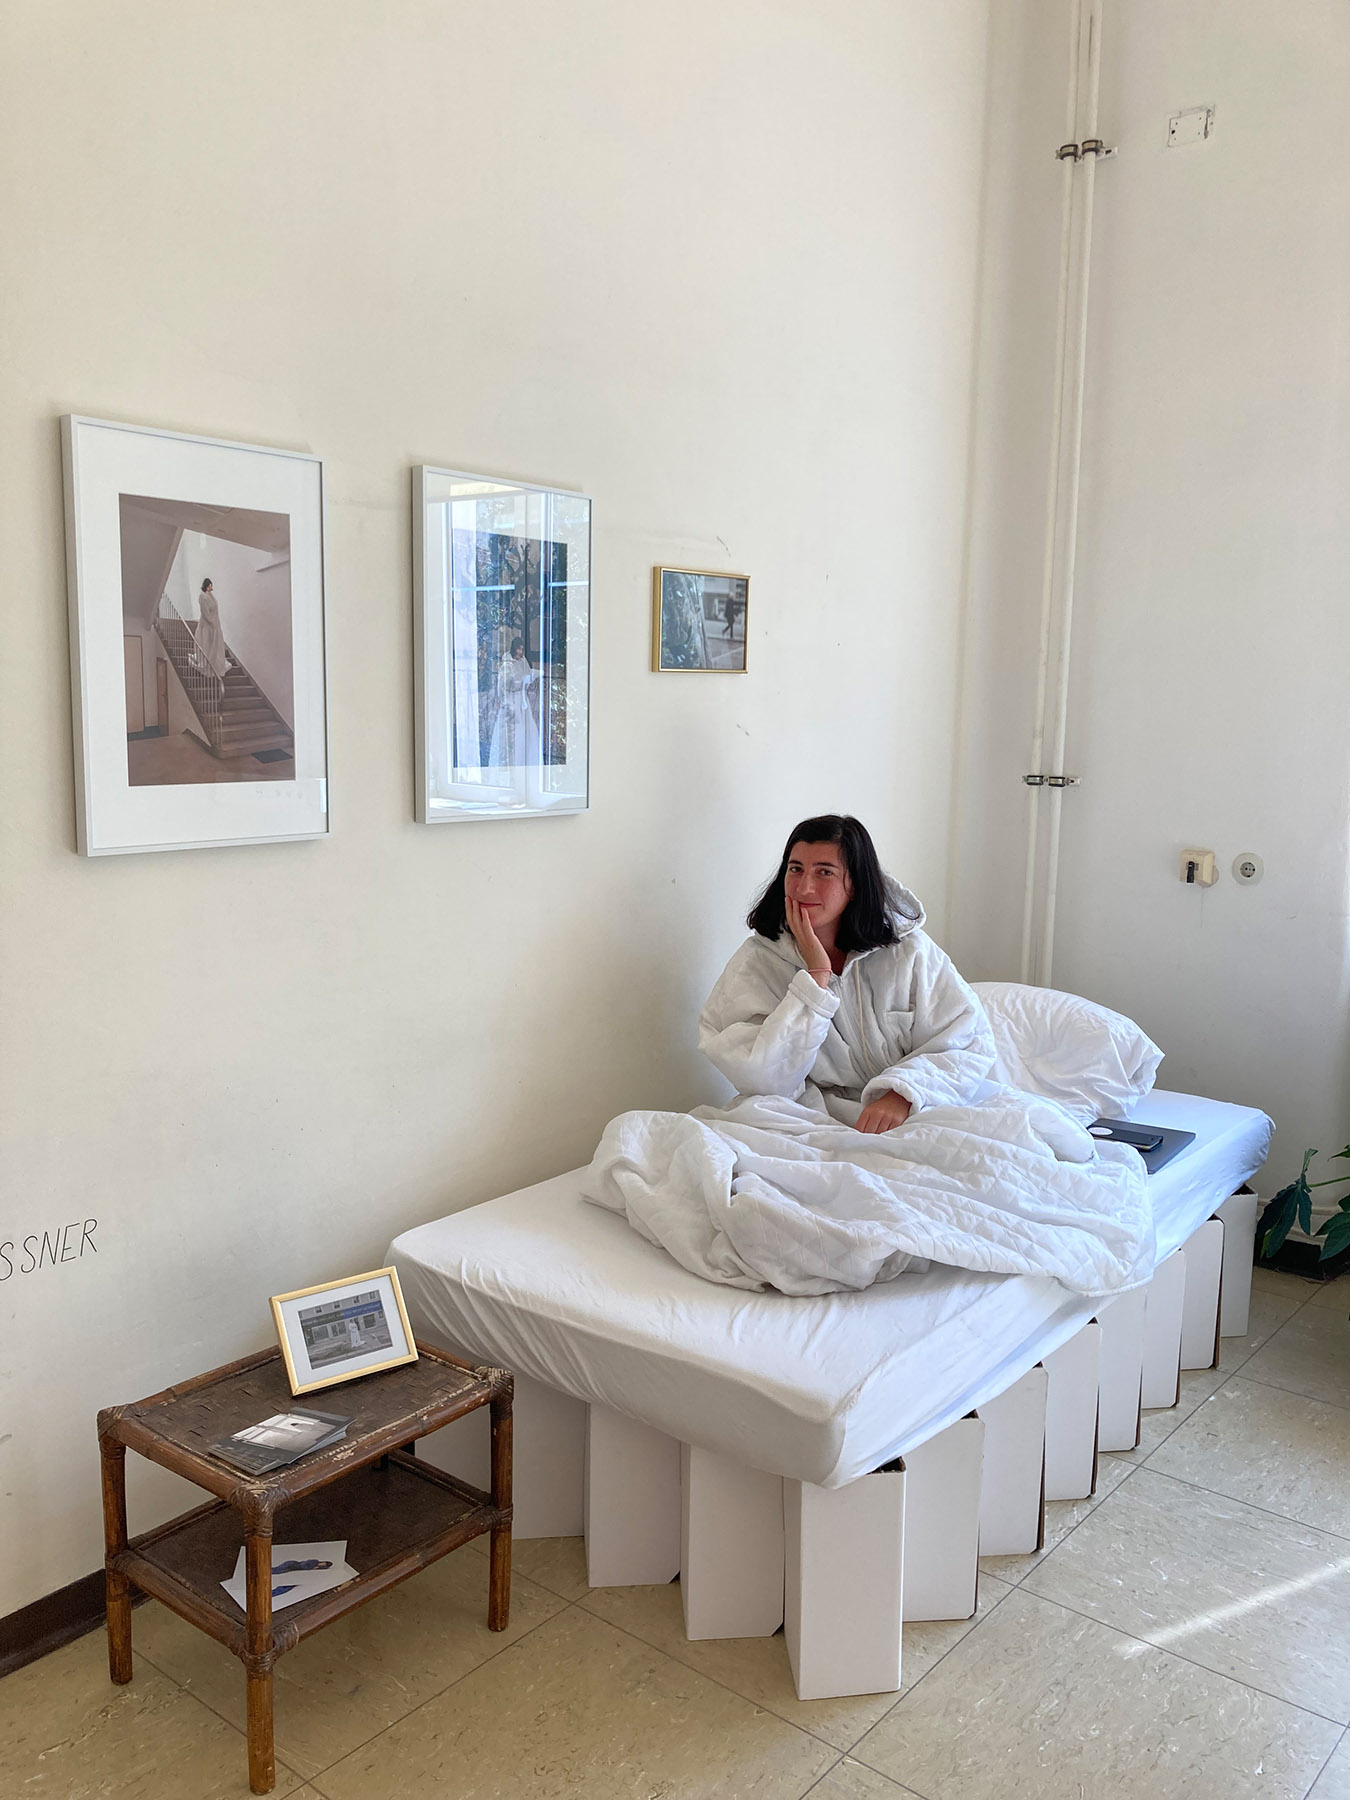 anne glassner, periscope, art project, sleeping, bed, art performance